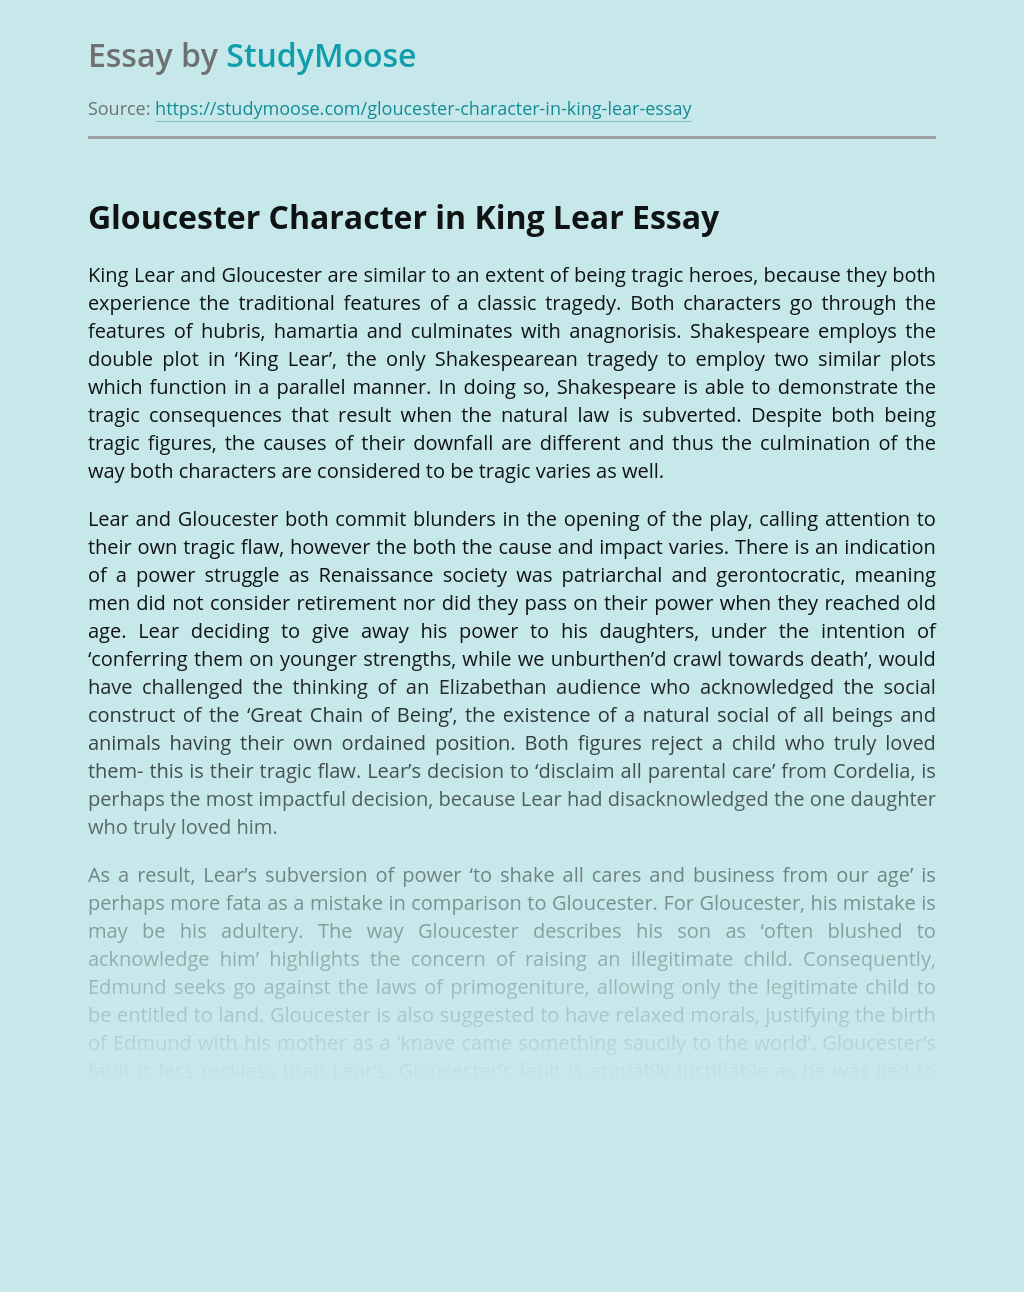 Gloucester Character in King Lear